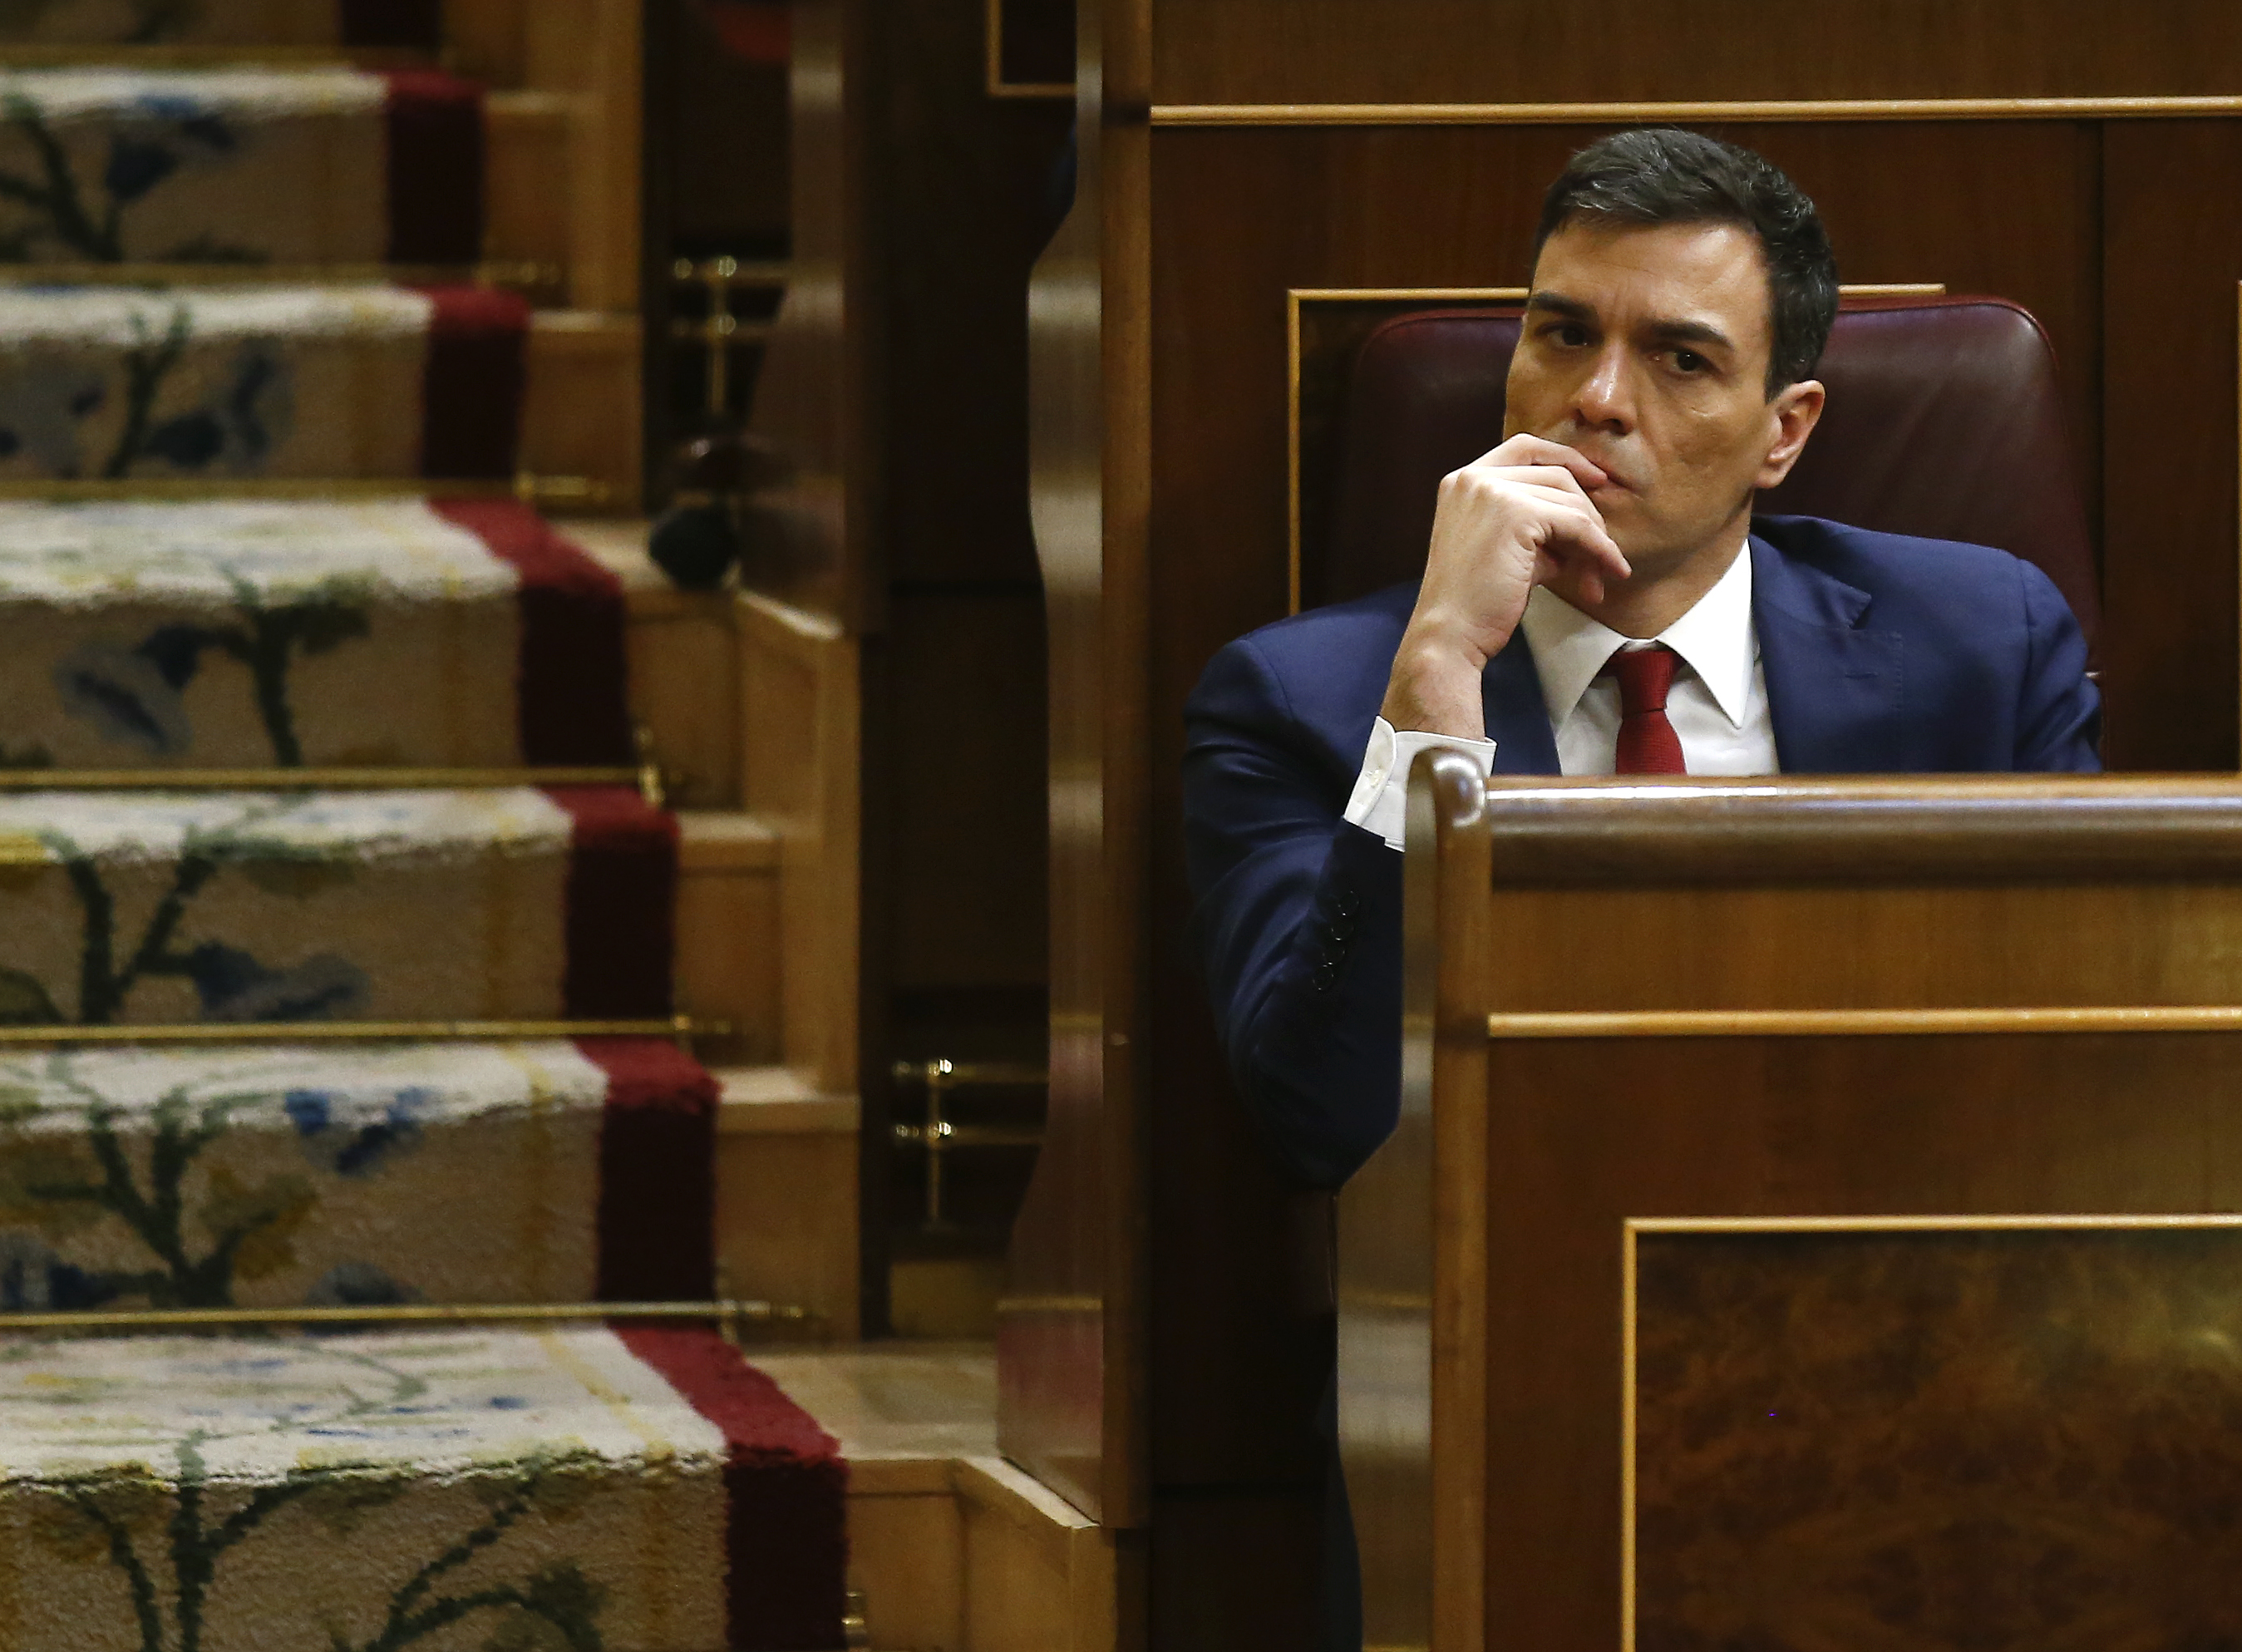 Spain's Socialist Party (PSOE) leader Pedro Sanchez attends an investiture debate at parliament in Madrid, Spain, March 2, 2016. REUTERS/Andrea Comas - RTS8XN8